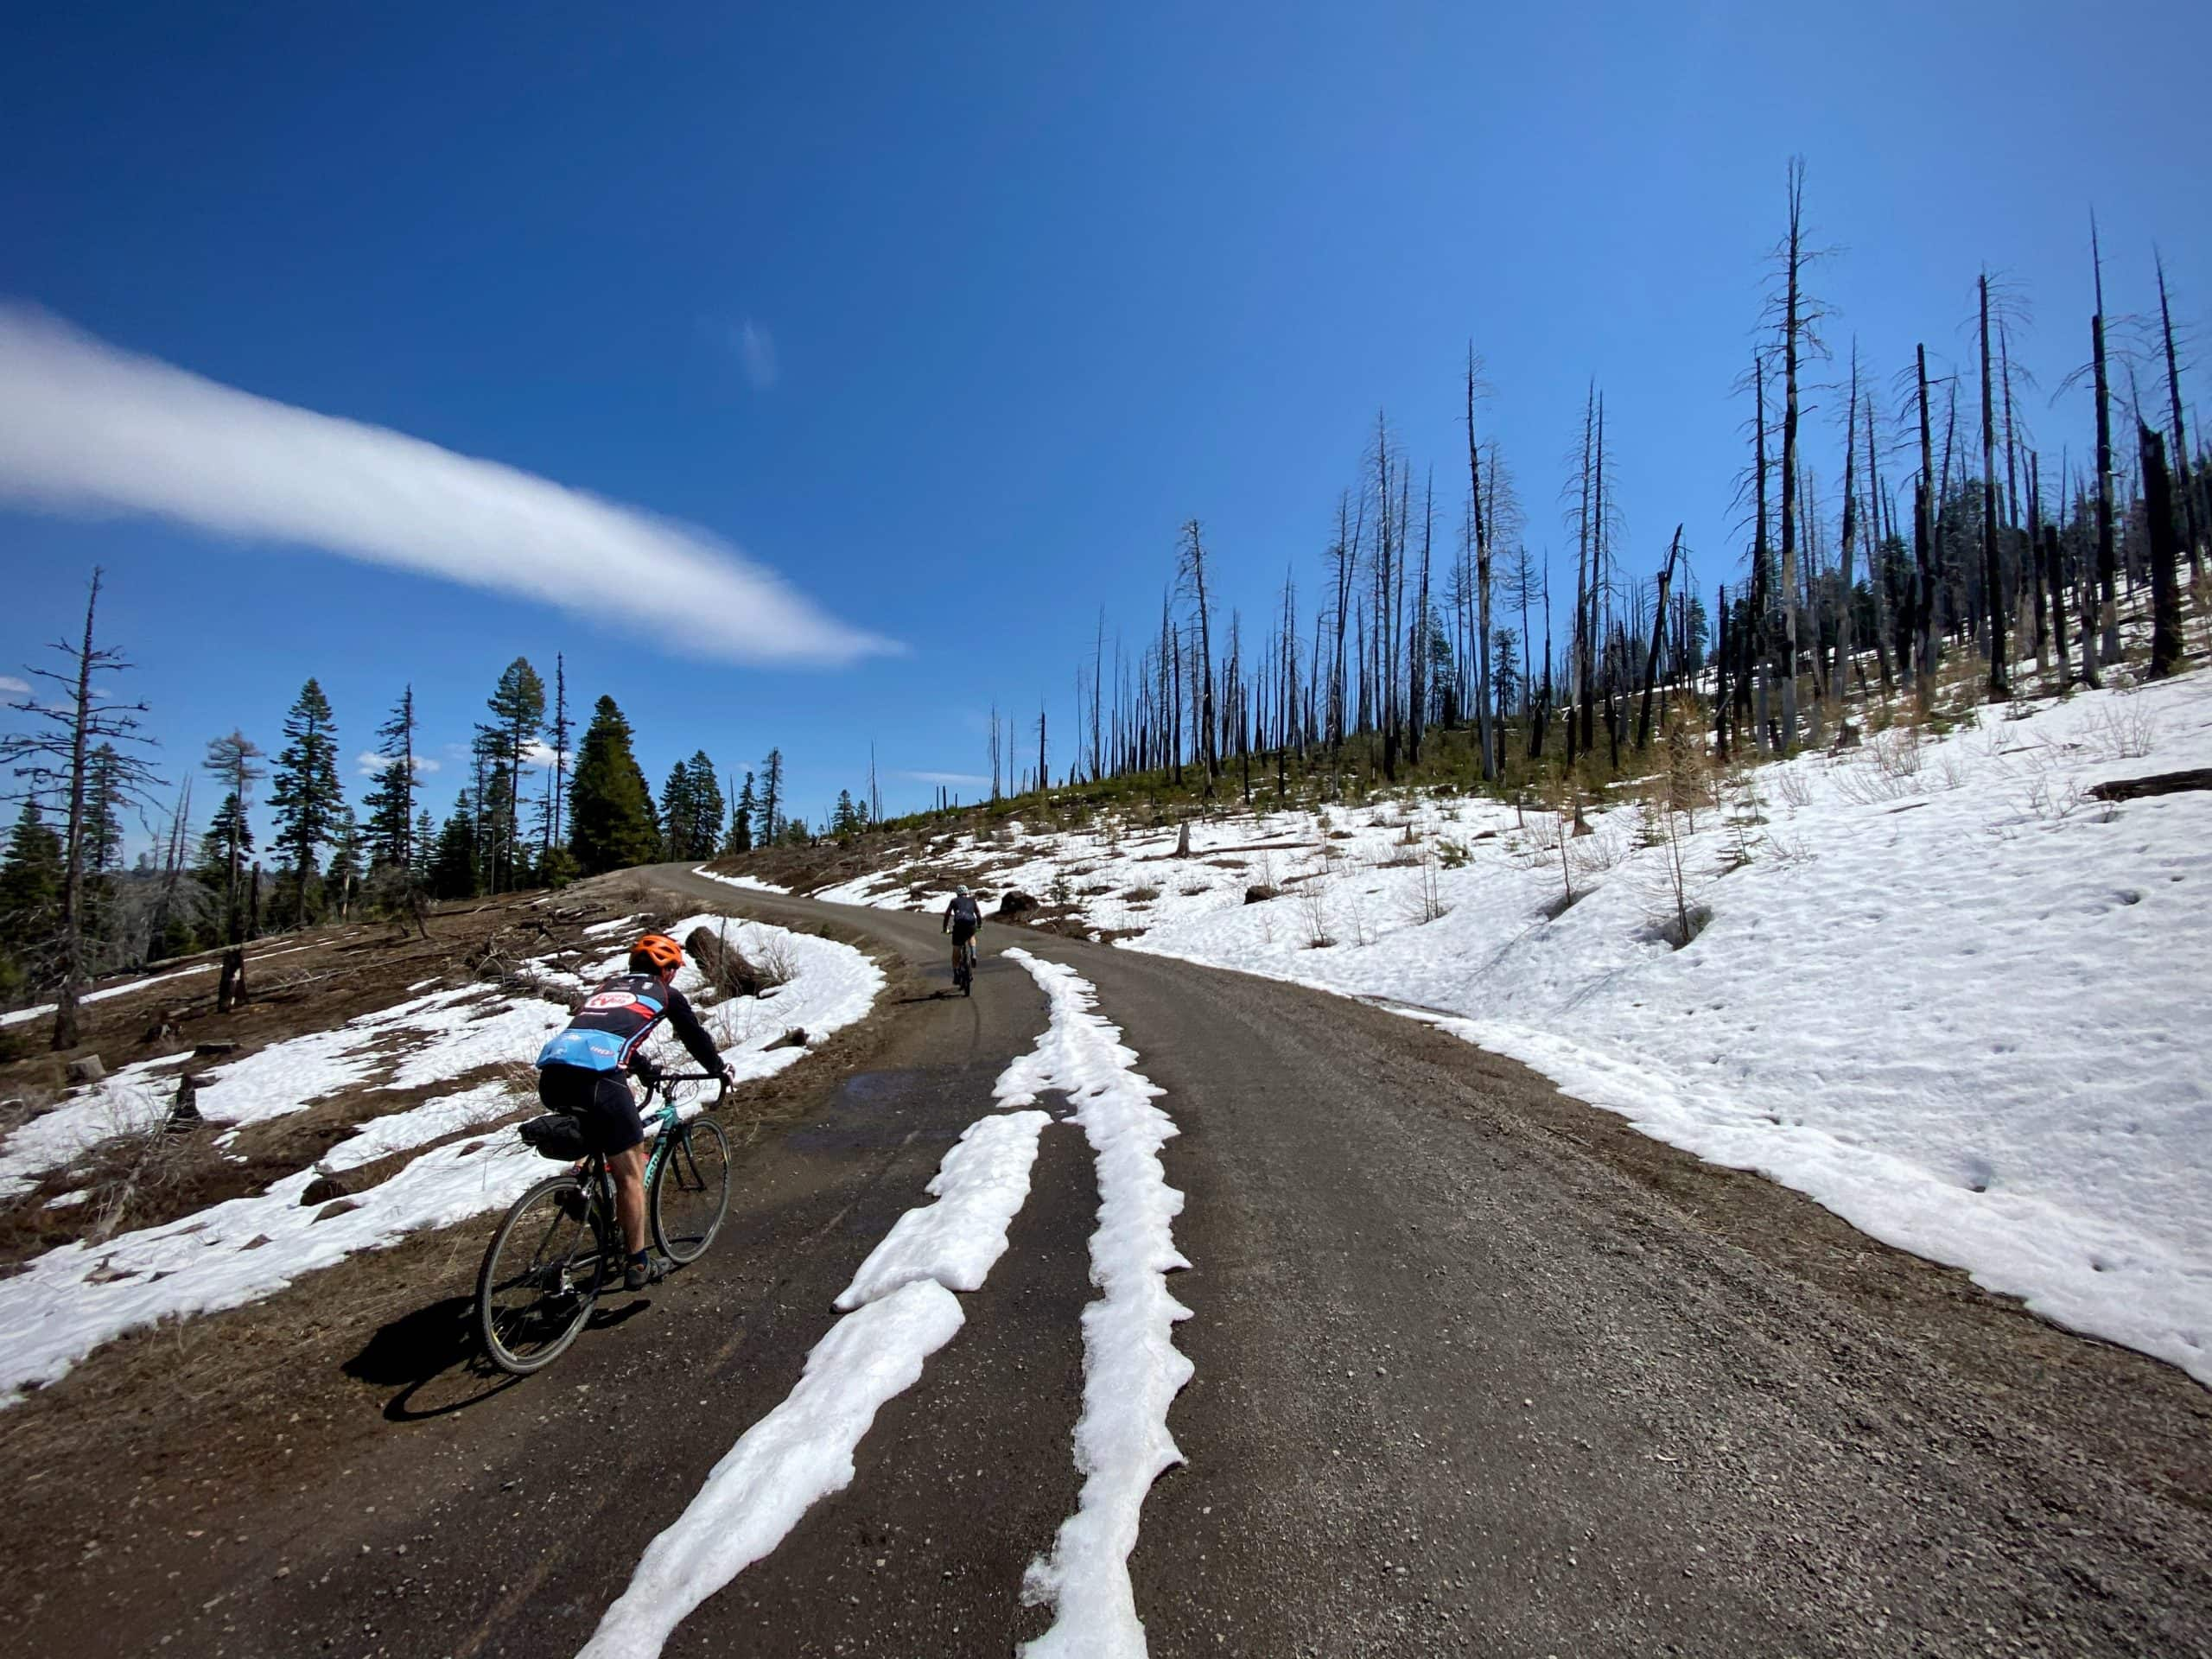 Gravel cyclist near Wolf Mountain with burned trees and snow near Paulina, OR.